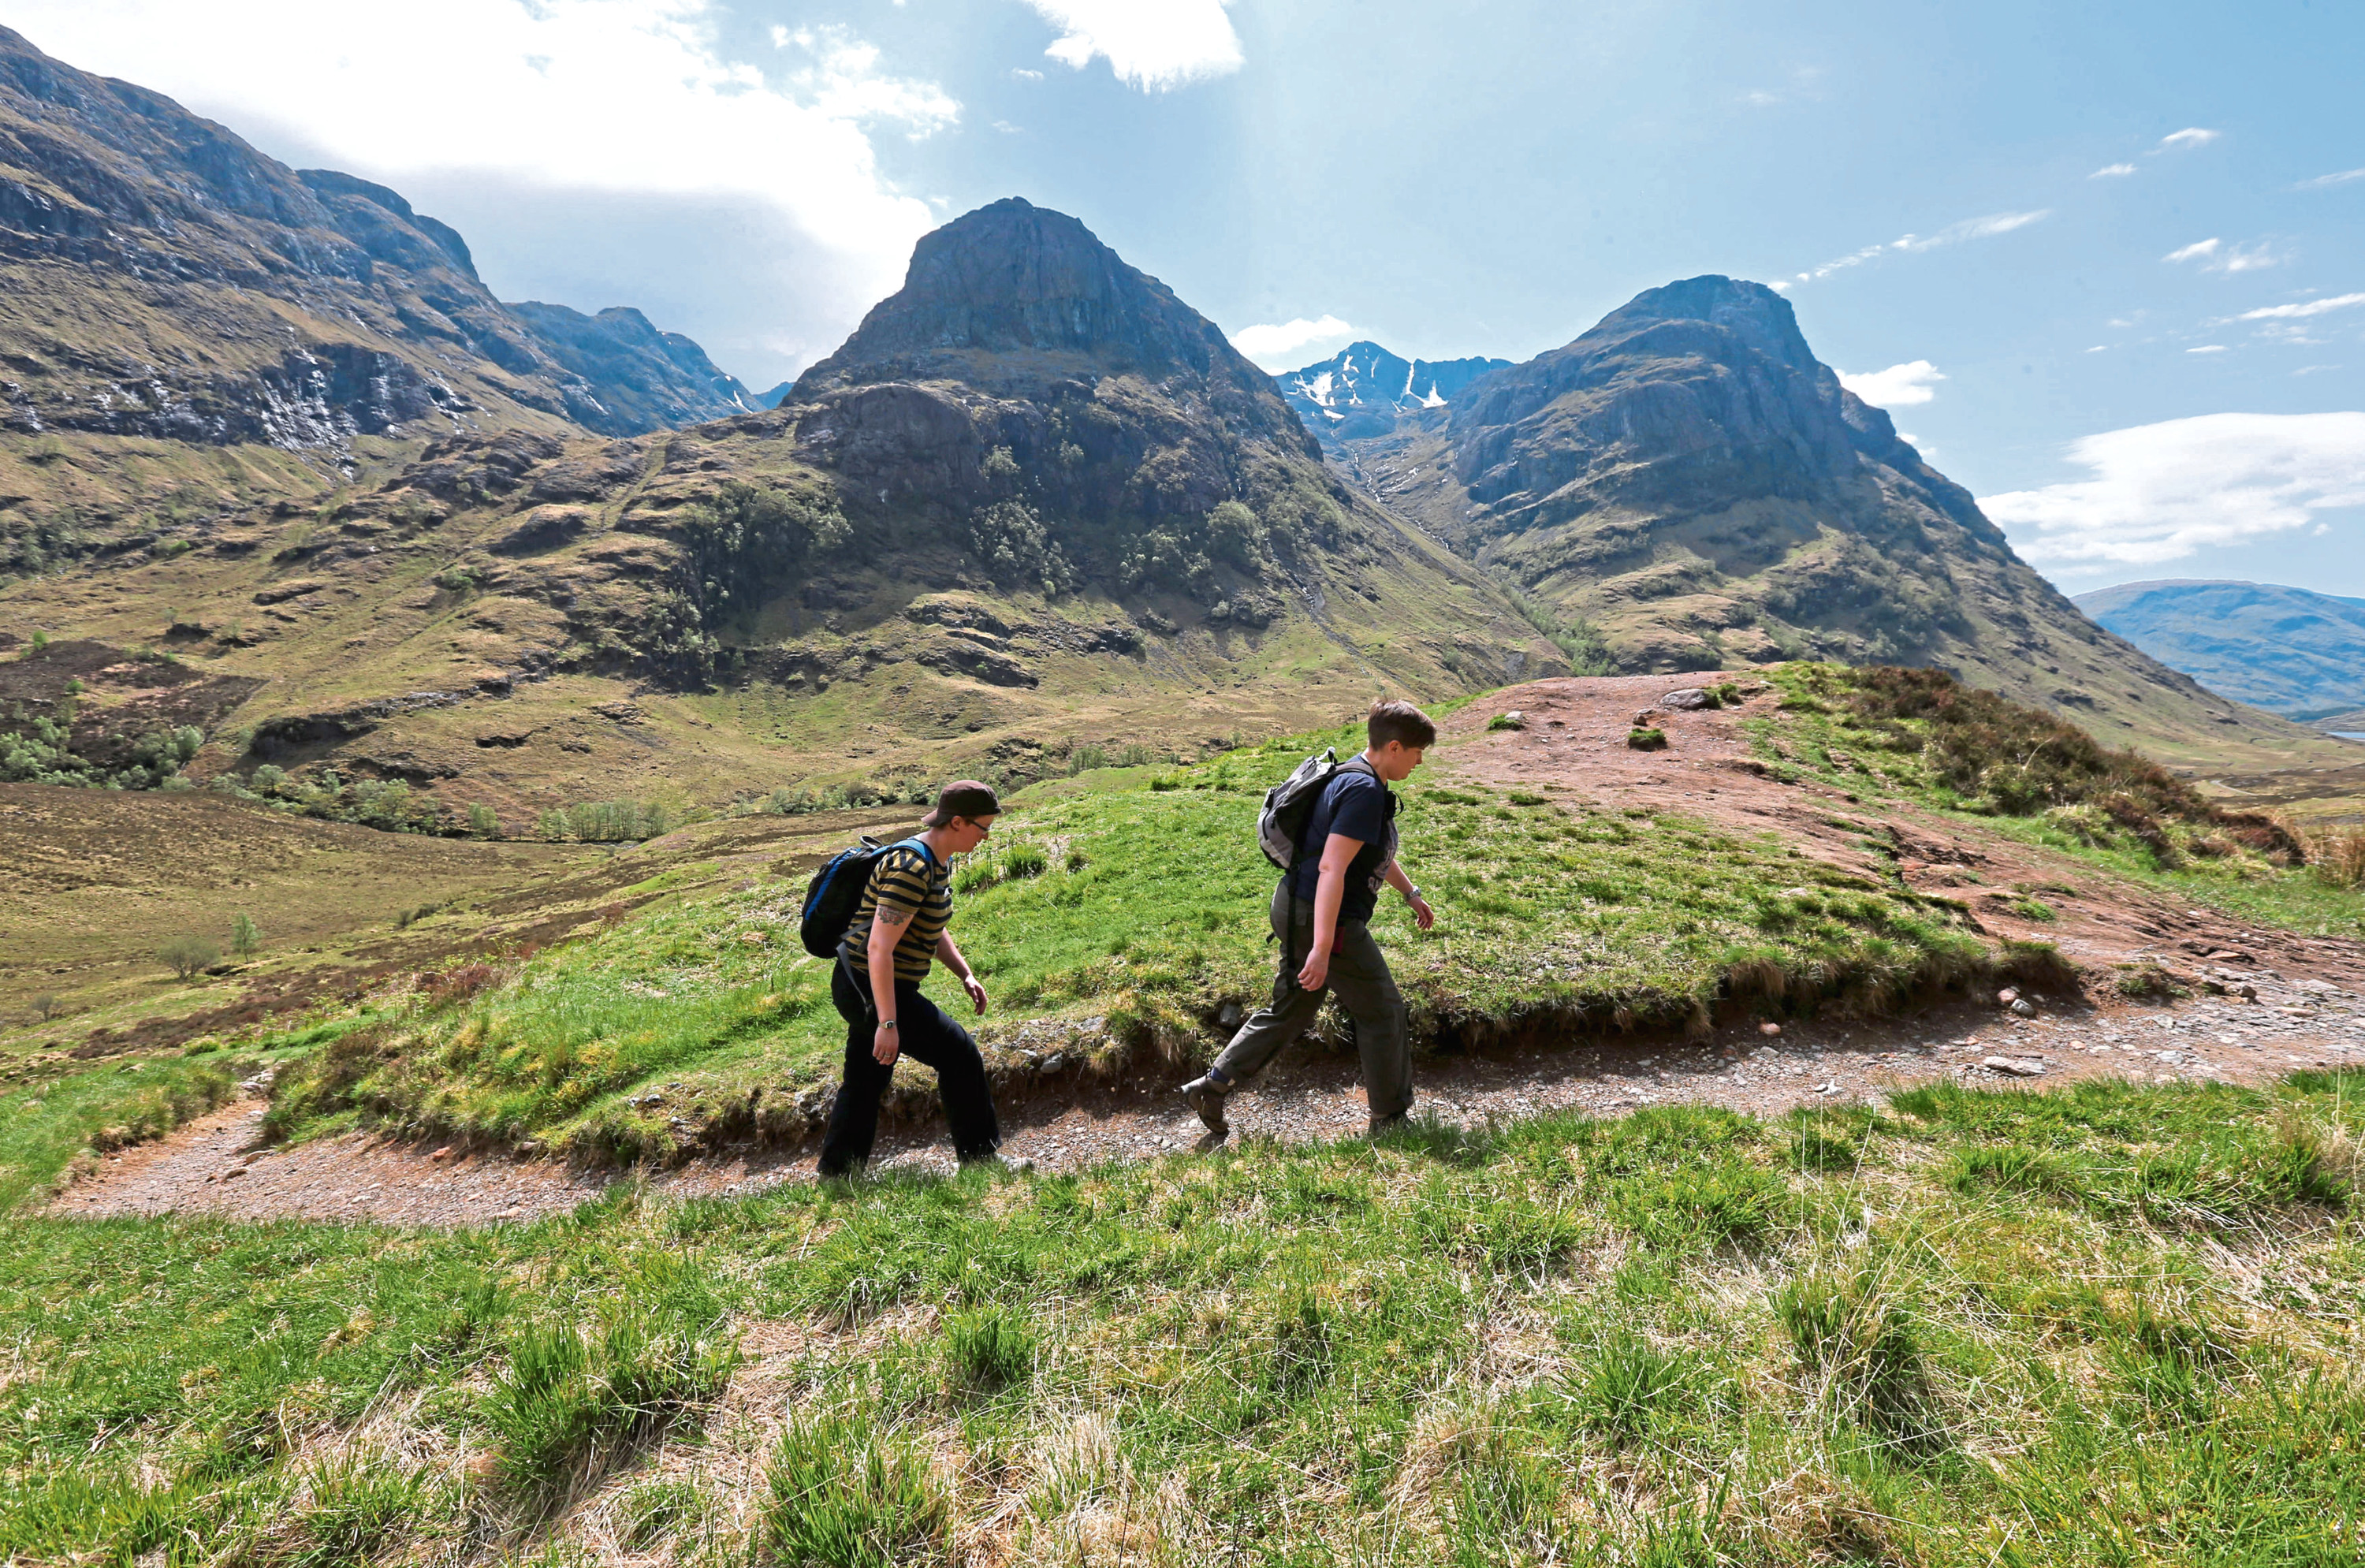 Walkers near the Three Sisters mountain range in the Highlands.